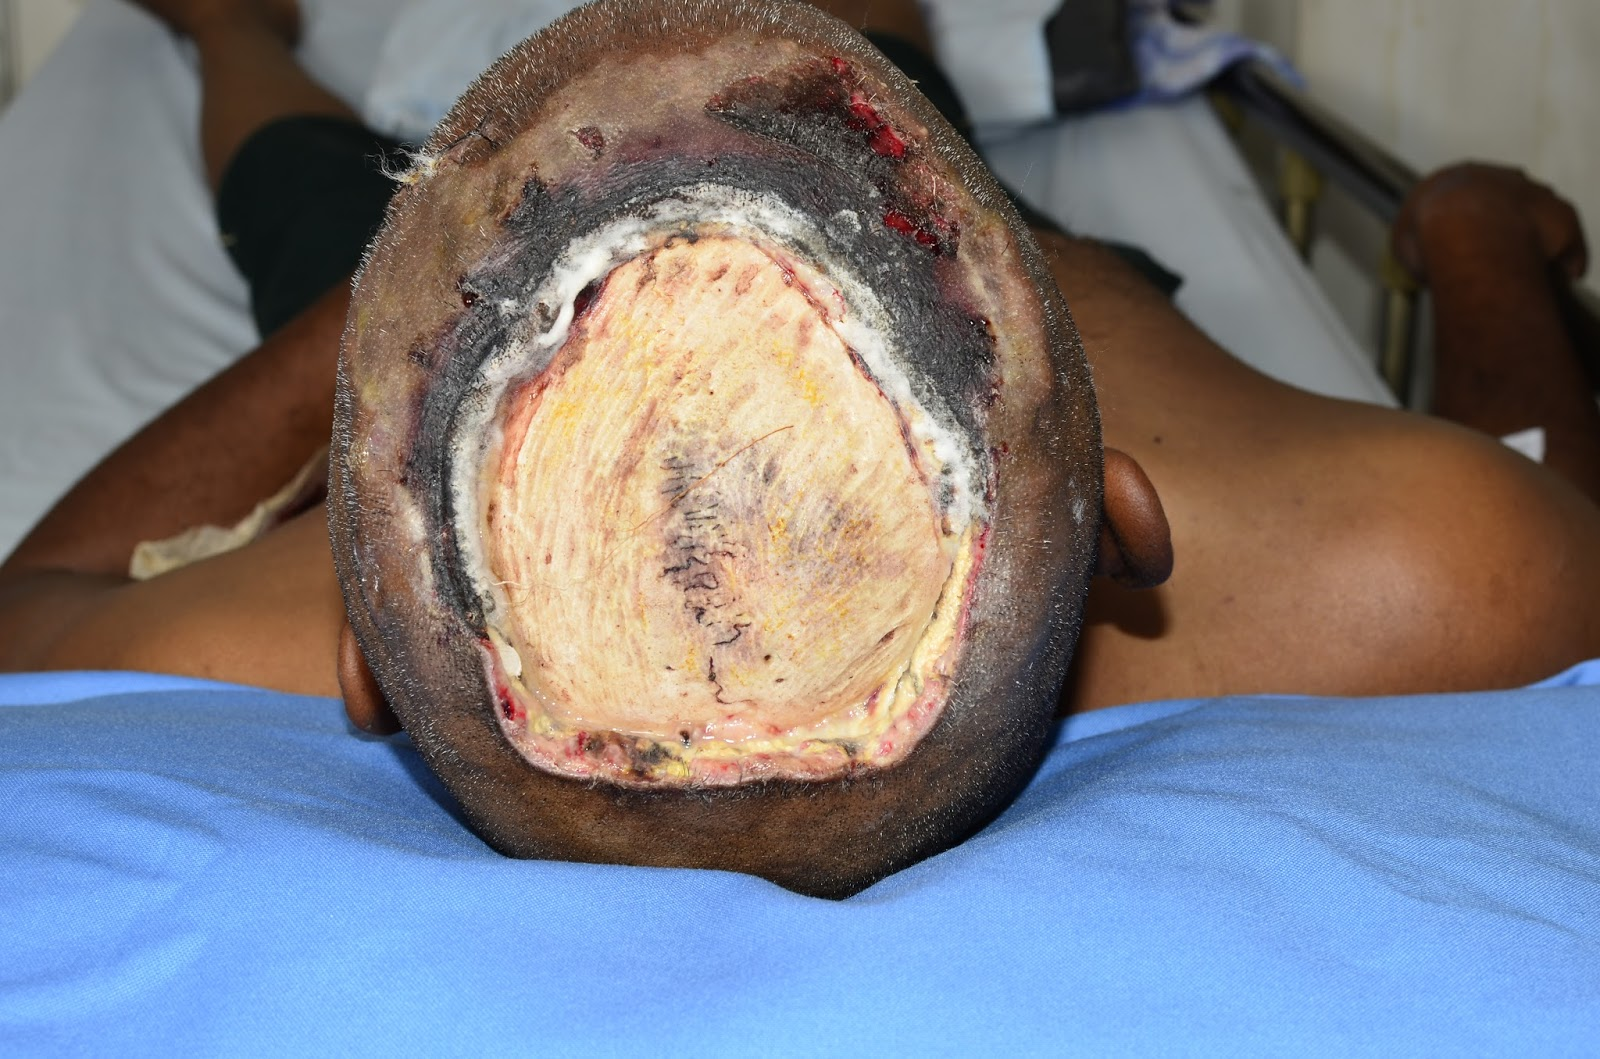 Natural Treatment For Fungal Infection On Scalp